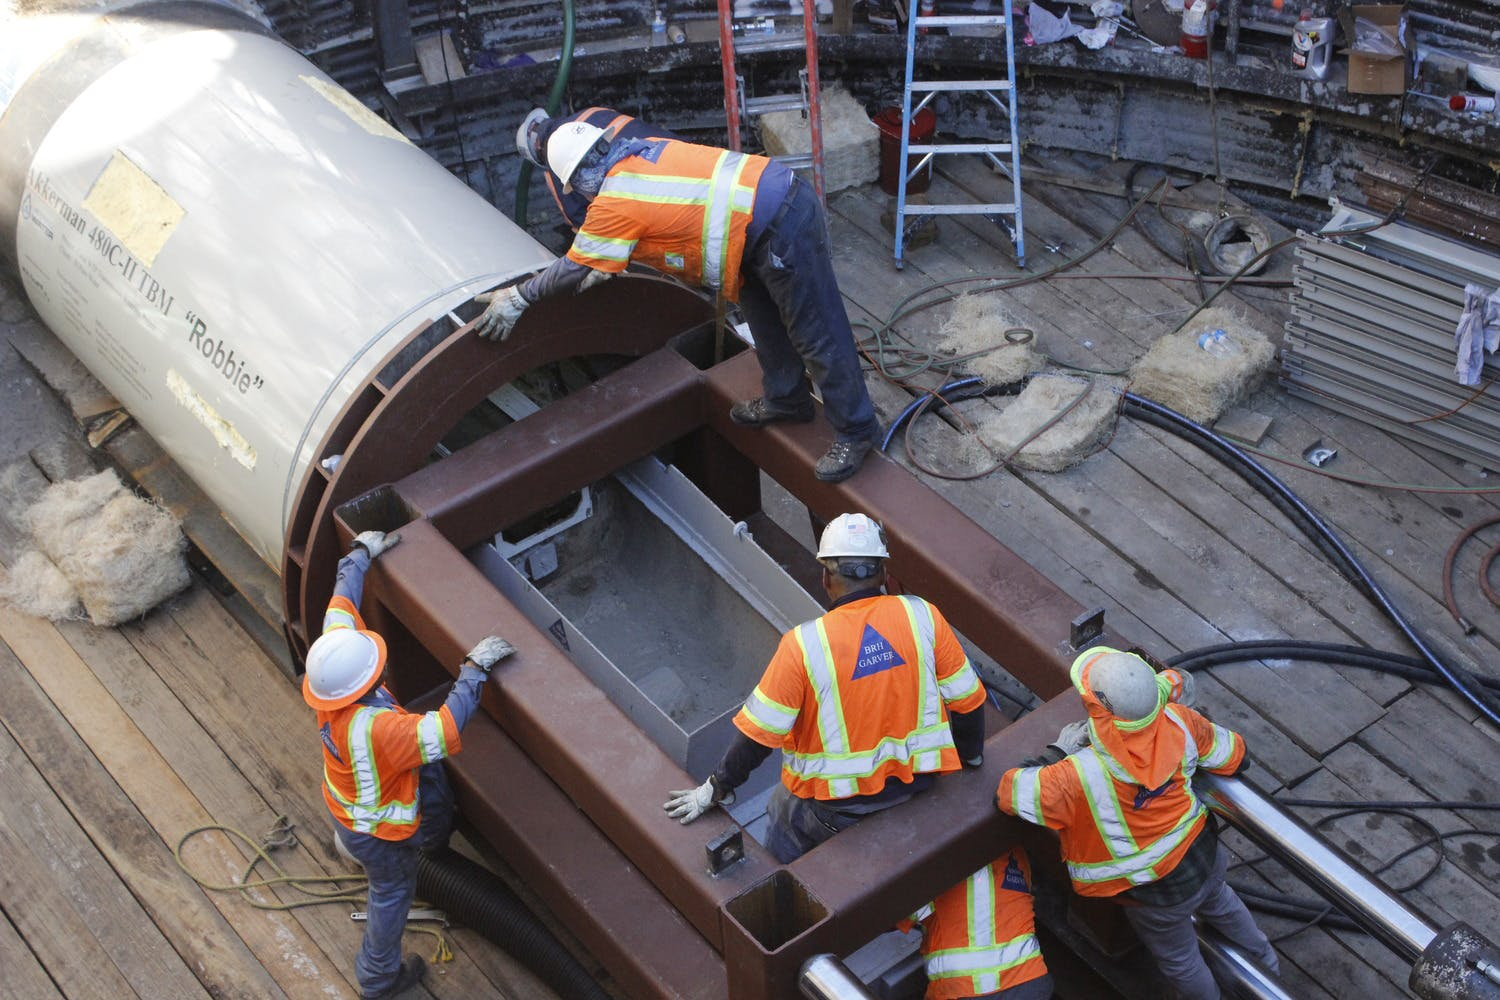 El Paso Water Writes About How Teamwork Fosters Tunnel Project cover image